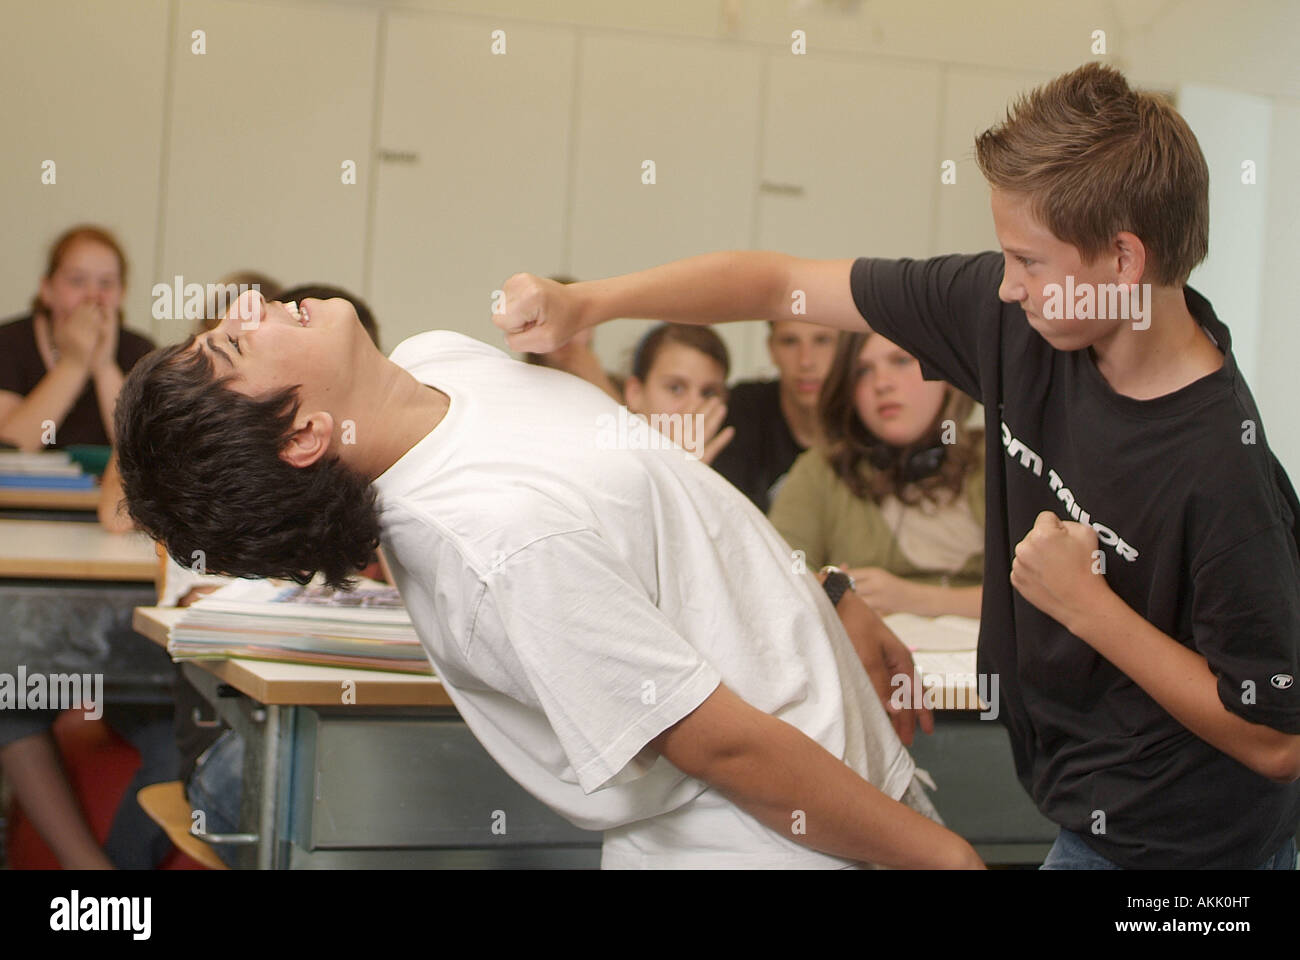 fight between students Stock Photo